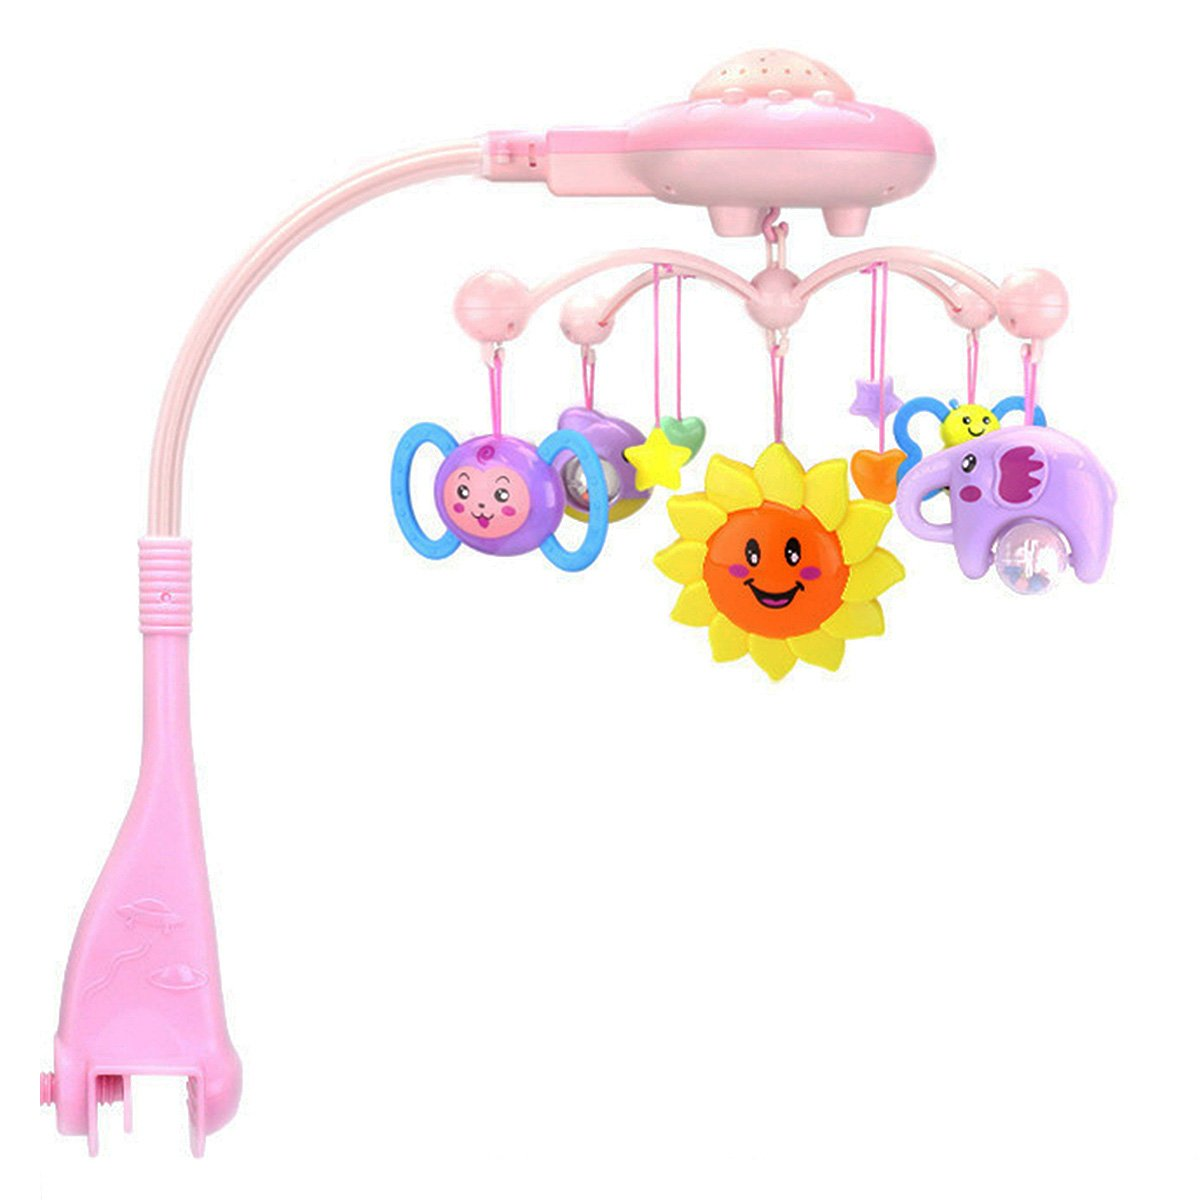 Kid Baby Musical Crib Bed Cot Mobile Stars Dreams Light Flash Nusery Lullaby Toy tradeonline6688